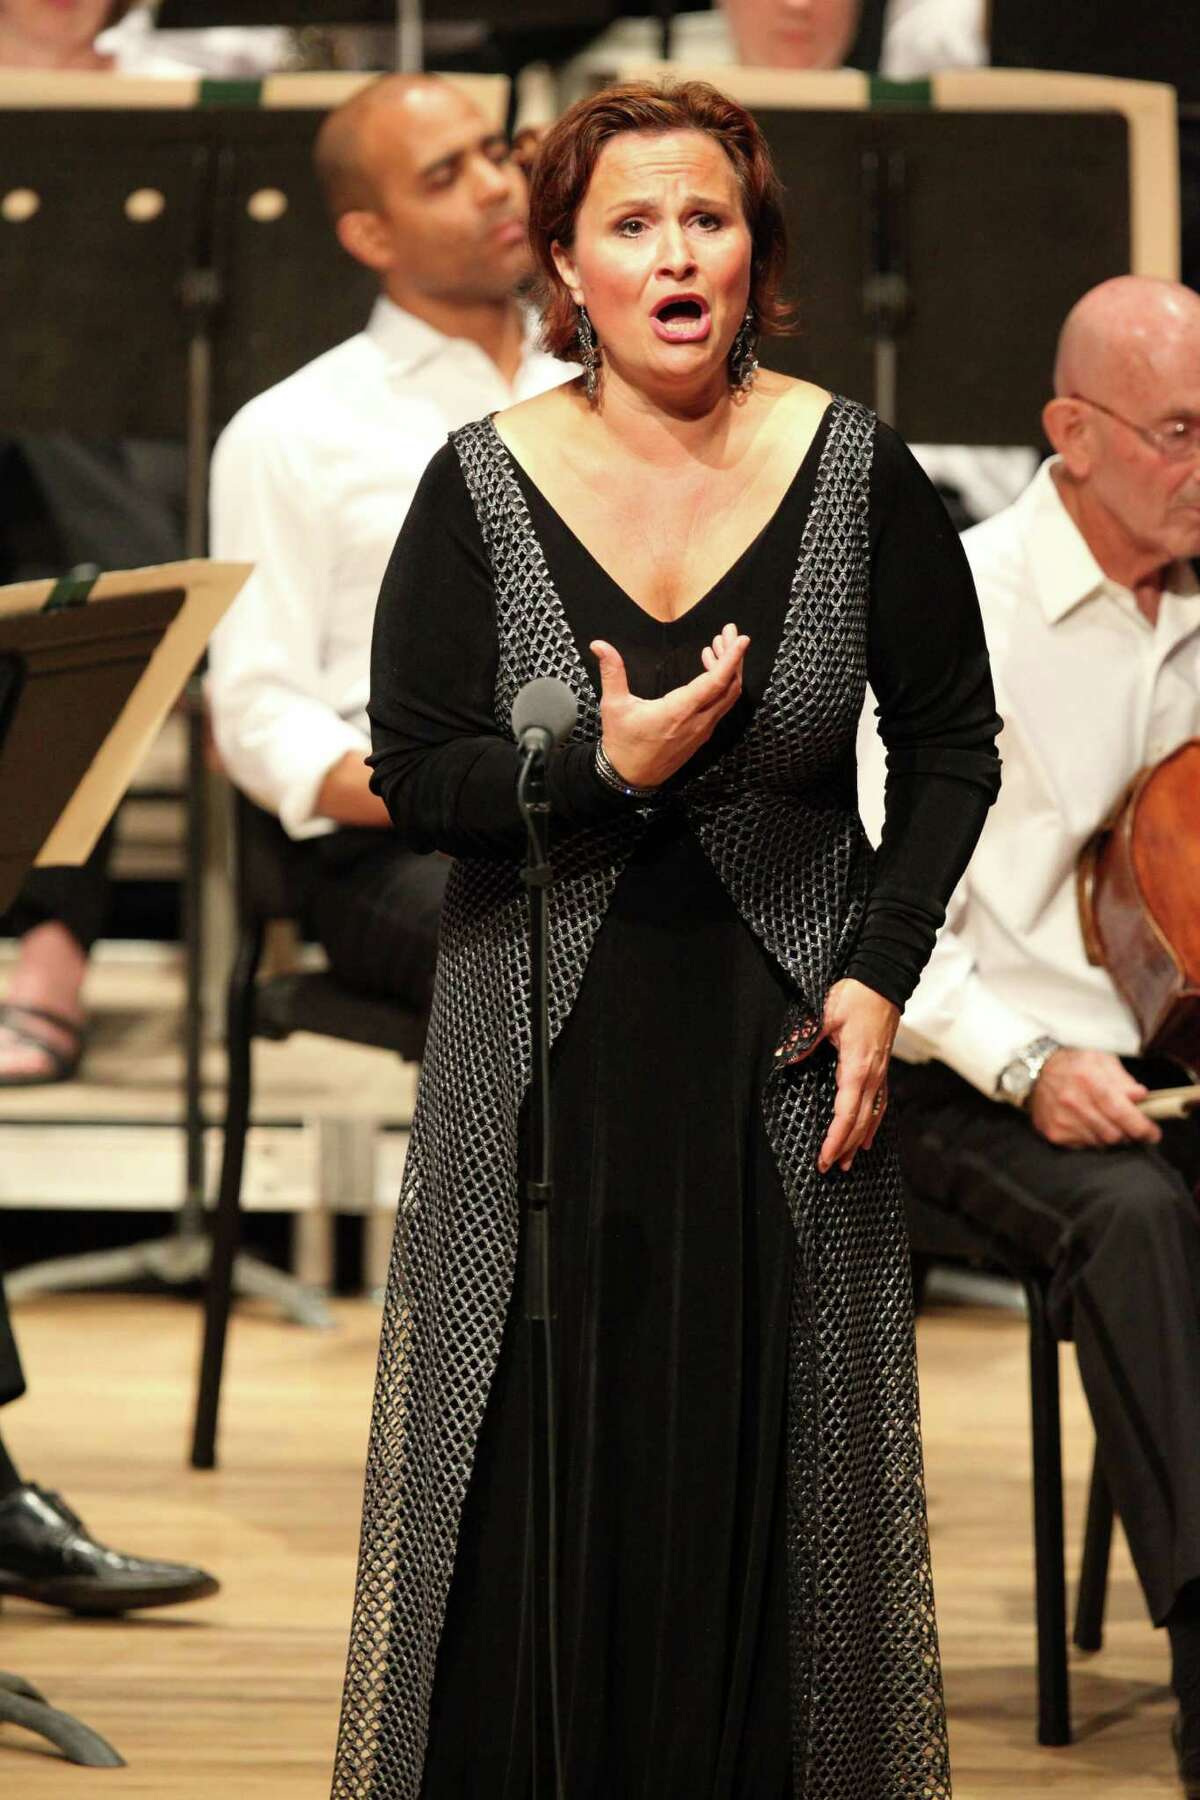 Soloists Katarina Dalayman during the performance of Wagner's Die Walkure, Act 3 (Hilary Scott)